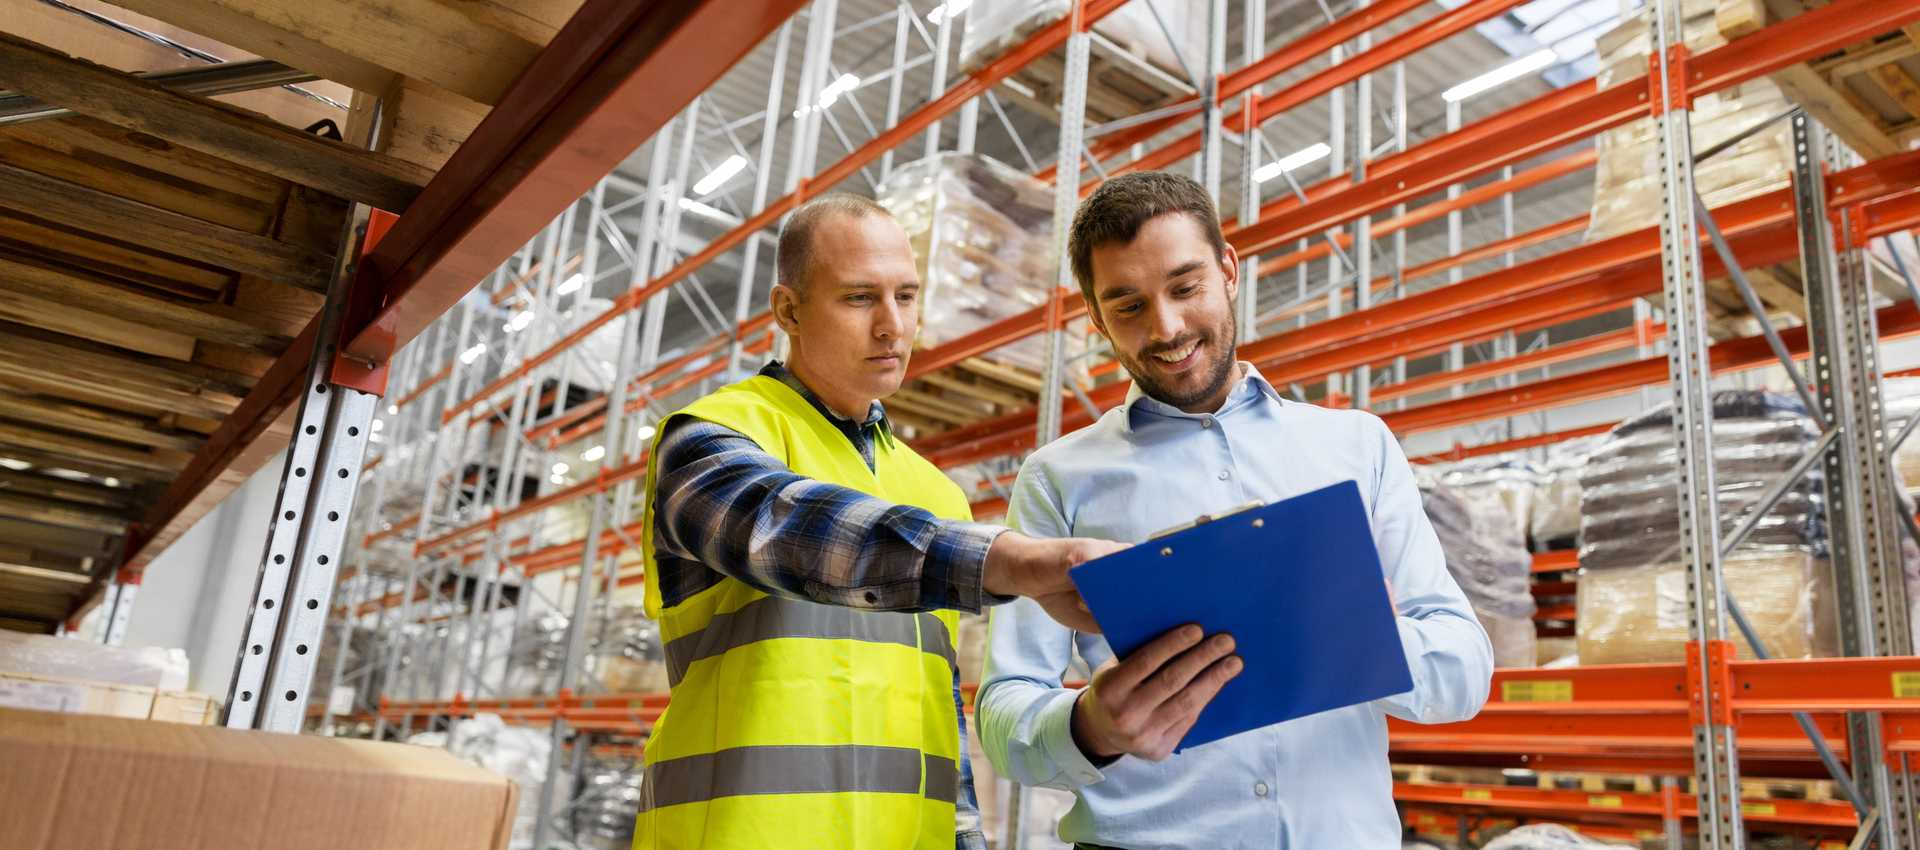 Effective Training for Warehouse Workers to Improve Productivity